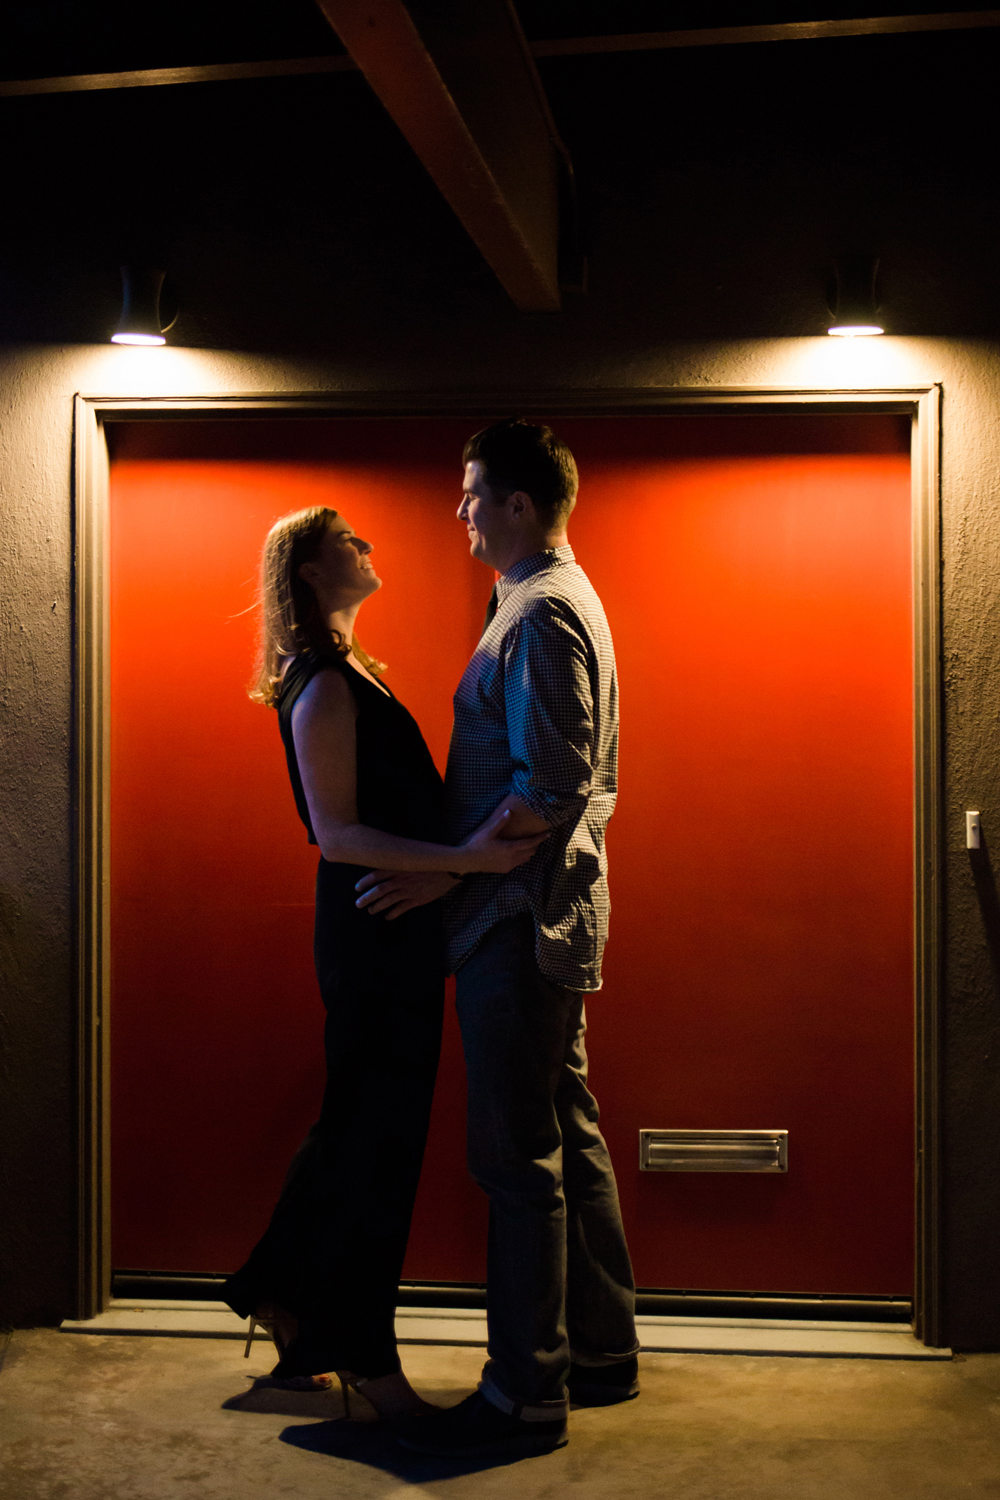 corona-heights-park-san-francisco-engagement-photography-lilouette-25.jpg